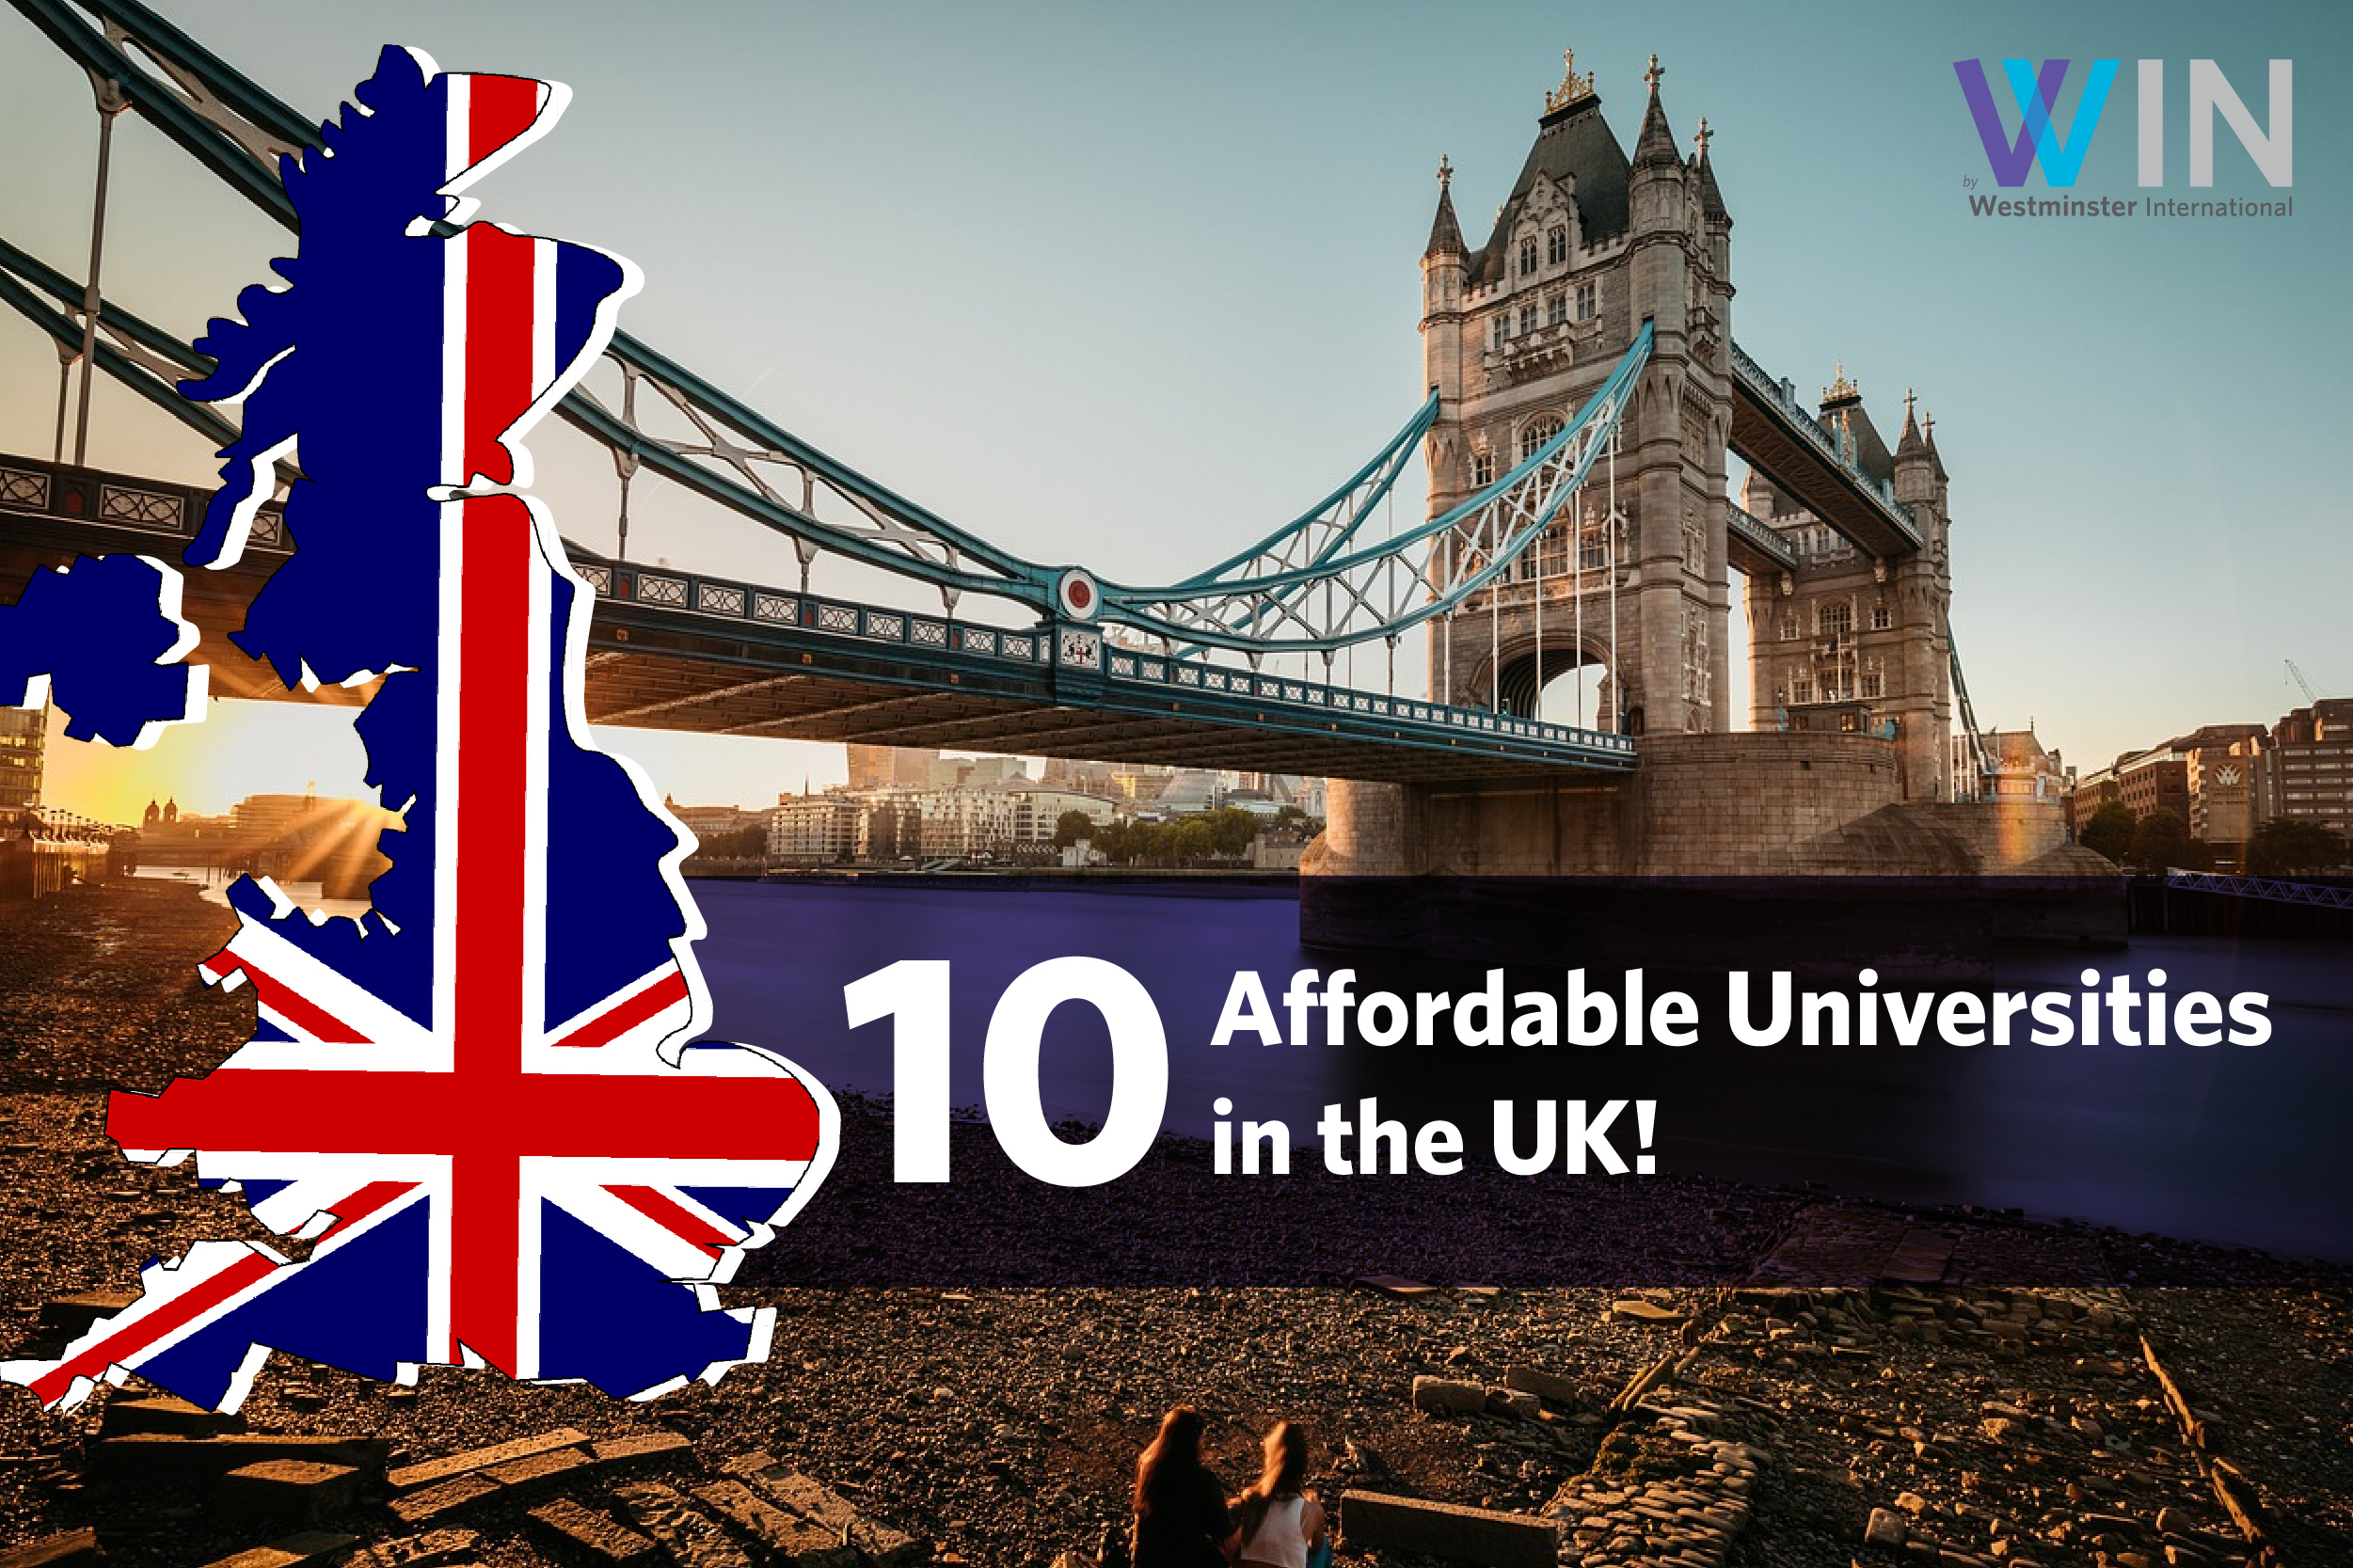 10 Affordable Universities in the UK!